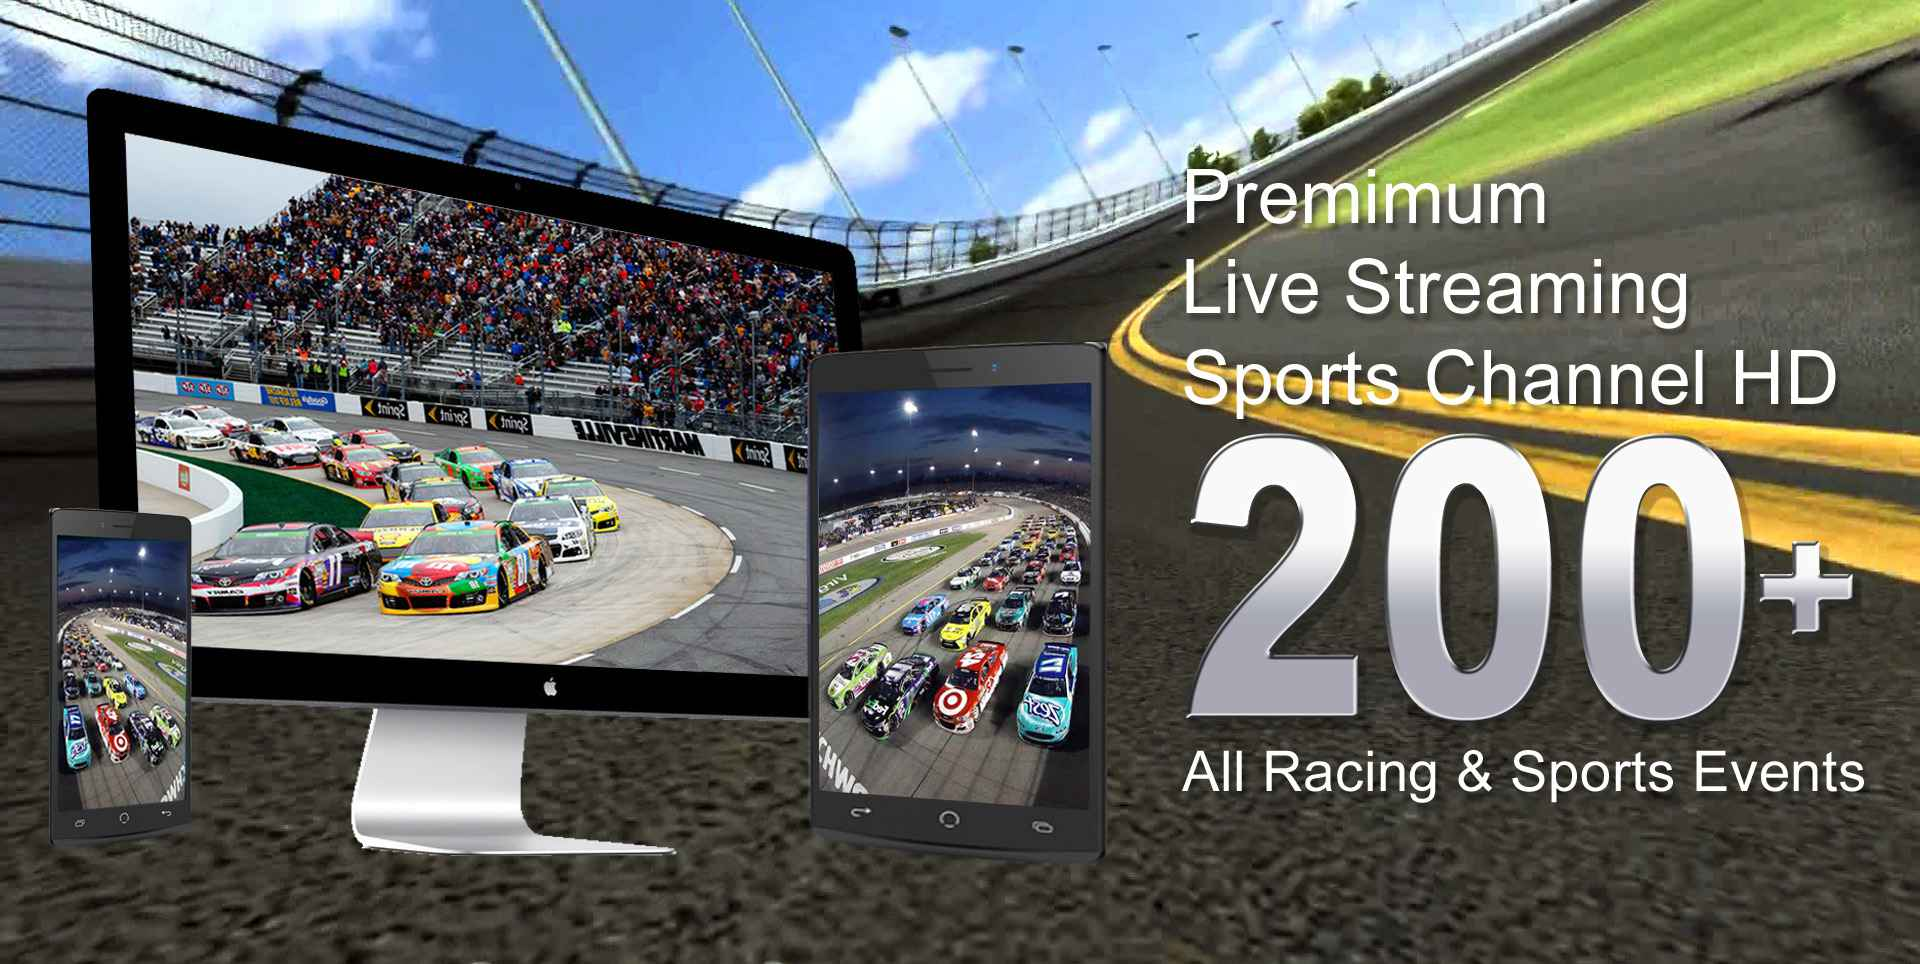 NASCAR Sprint Cup at Pocono